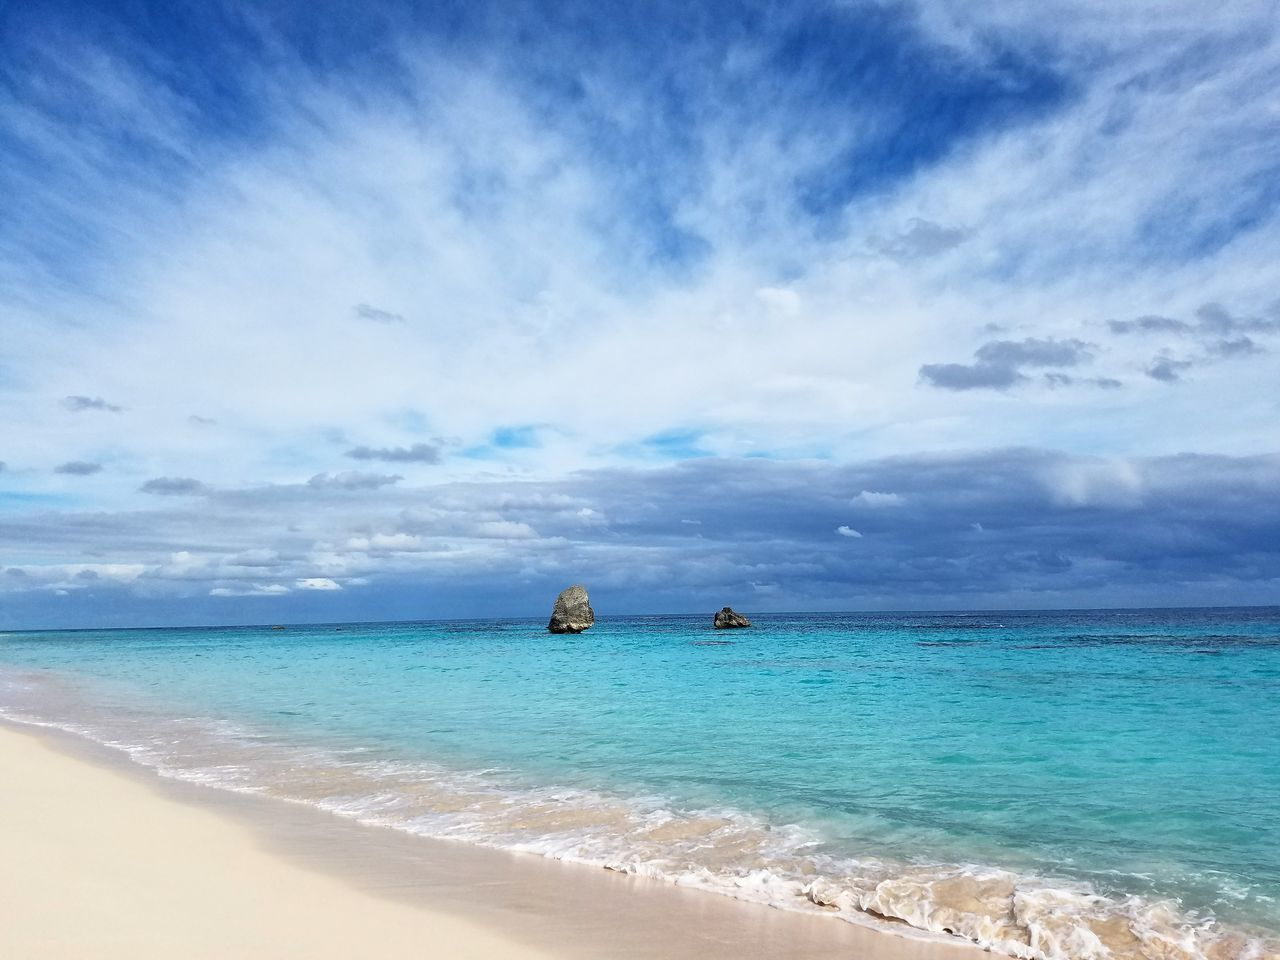 sea, sky, cloud - sky, scenics, water, horizon over water, beauty in nature, beach, nature, tranquility, no people, blue, day, tranquil scene, outdoors, travel destinations, nautical vessel